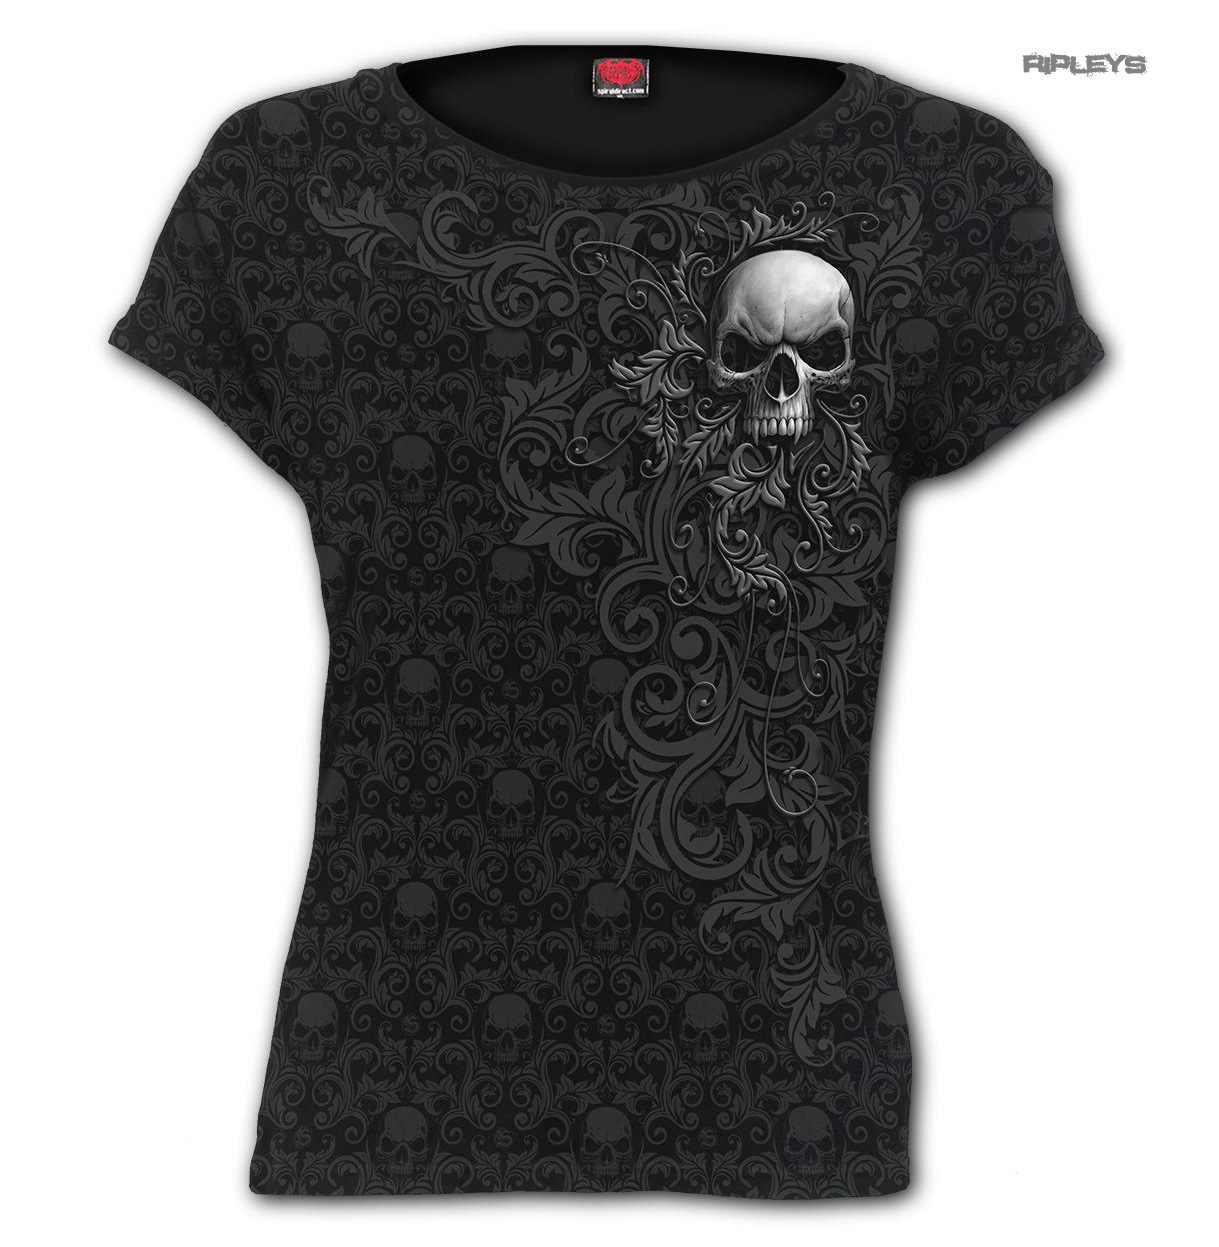 Spiral-Direct-Ladies-Black-Gothic-SKULL-SCROLL-Impression-T-Shirt-Top-All-Sizes thumbnail 2